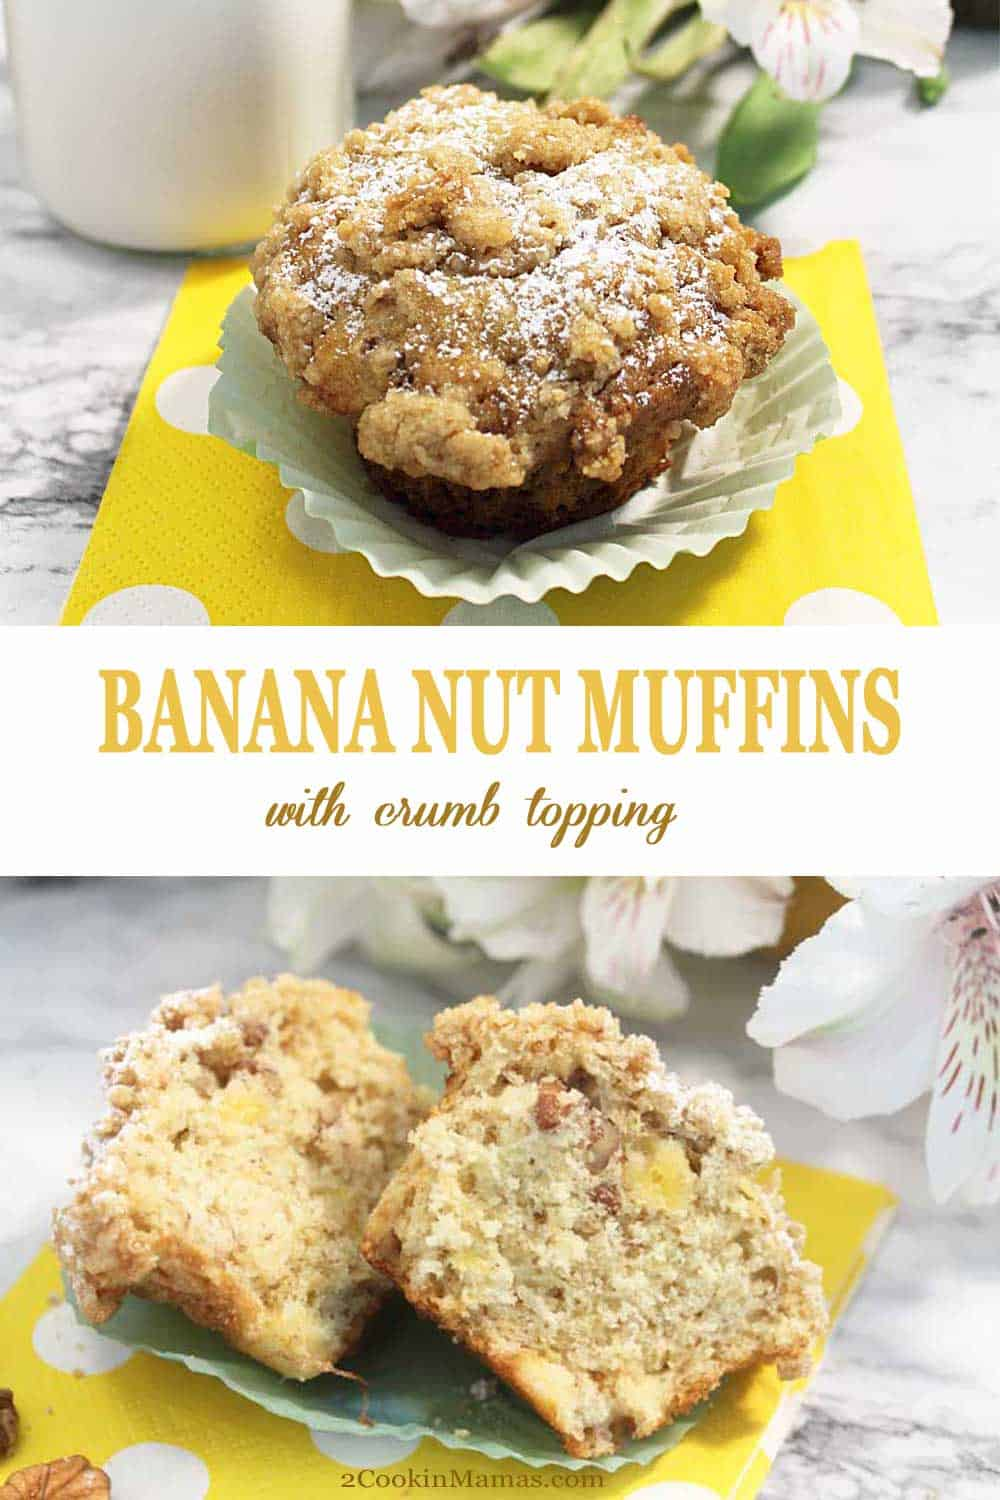 Banana Nut Muffins | 2 Cookin Mamas These amazingly moist and delicious banana muffins have tons of sweet banana flavor and a nice crunch from chopped pecans. Easy to make, complete with bakery-style muffins tops, and piled high with a crunchy crumb topping. Great for breakfast or snacks and on the table in just 30 minutes. #muffins #banana #withcrumbtopping #pecans #breakfast #snack #easy #recipe